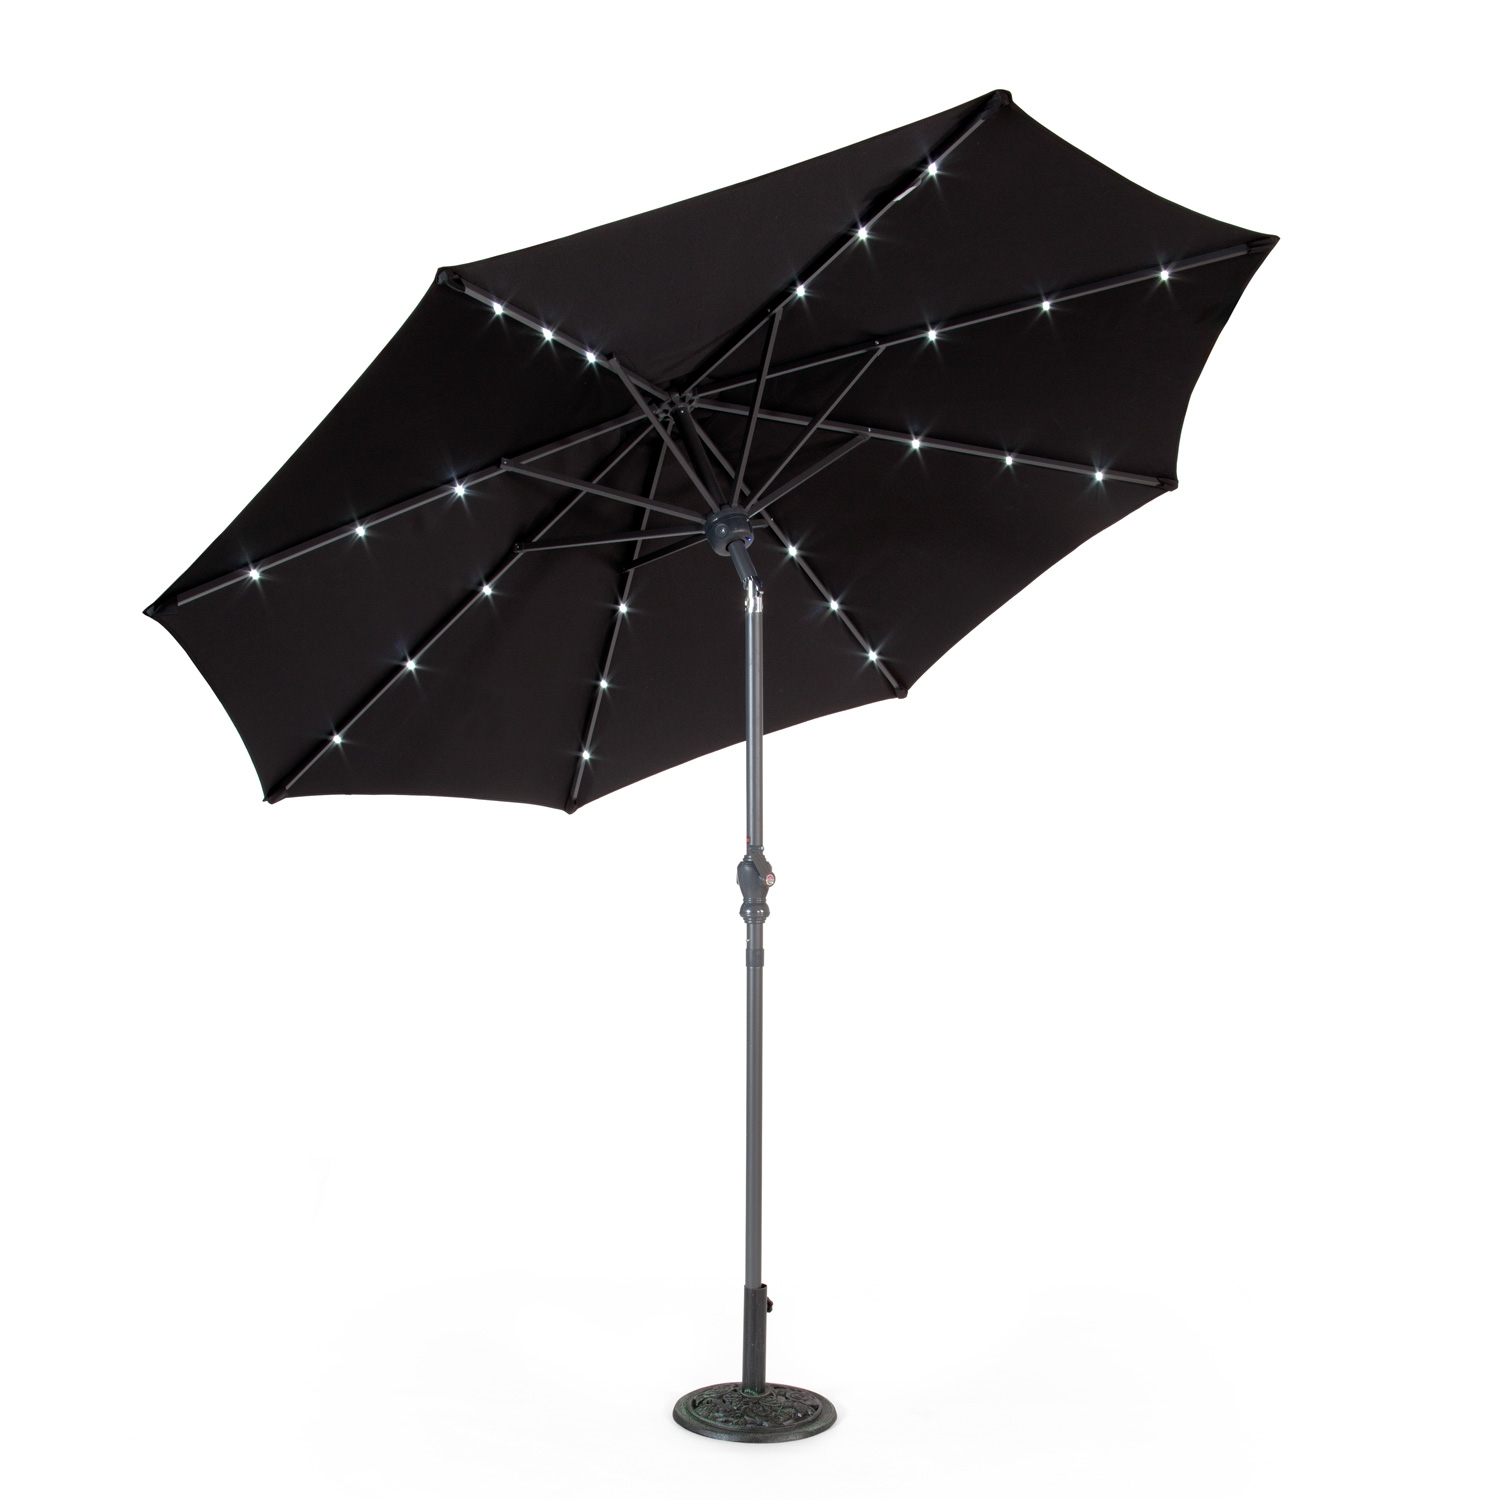 Suntime 2.7m Aluminium Bluetooth Speaker LED Black Parasol